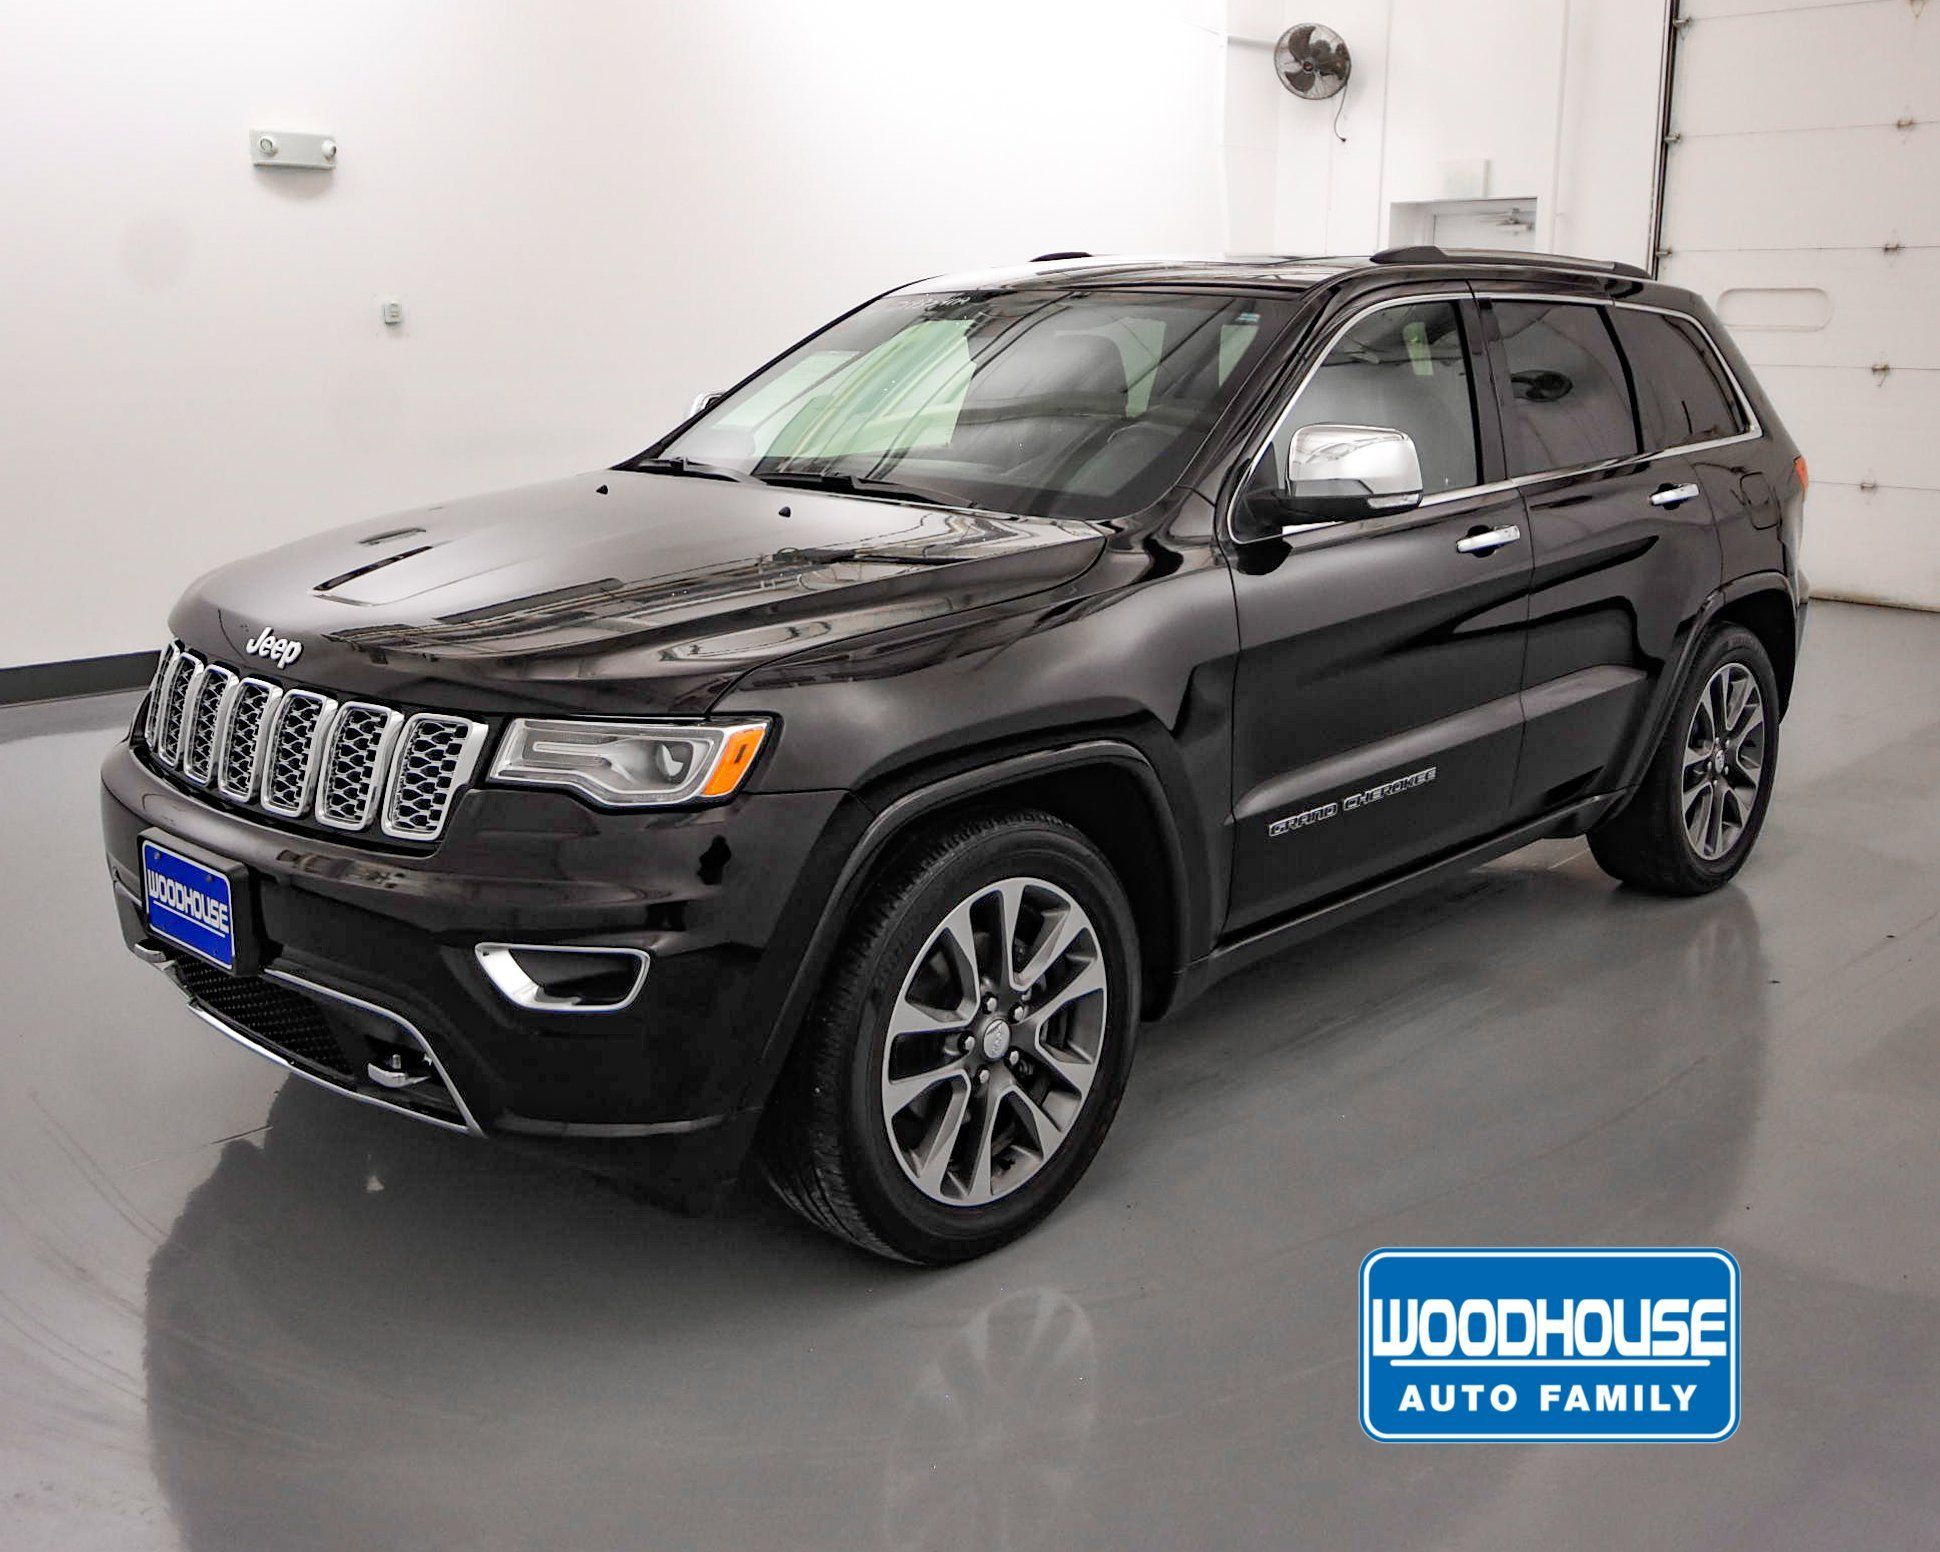 2020 Grand Cherokee Configurations In 2020 Grand Cherokee Overland 2017 Jeep Grand Cherokee Grand Cherokee Trailhawk